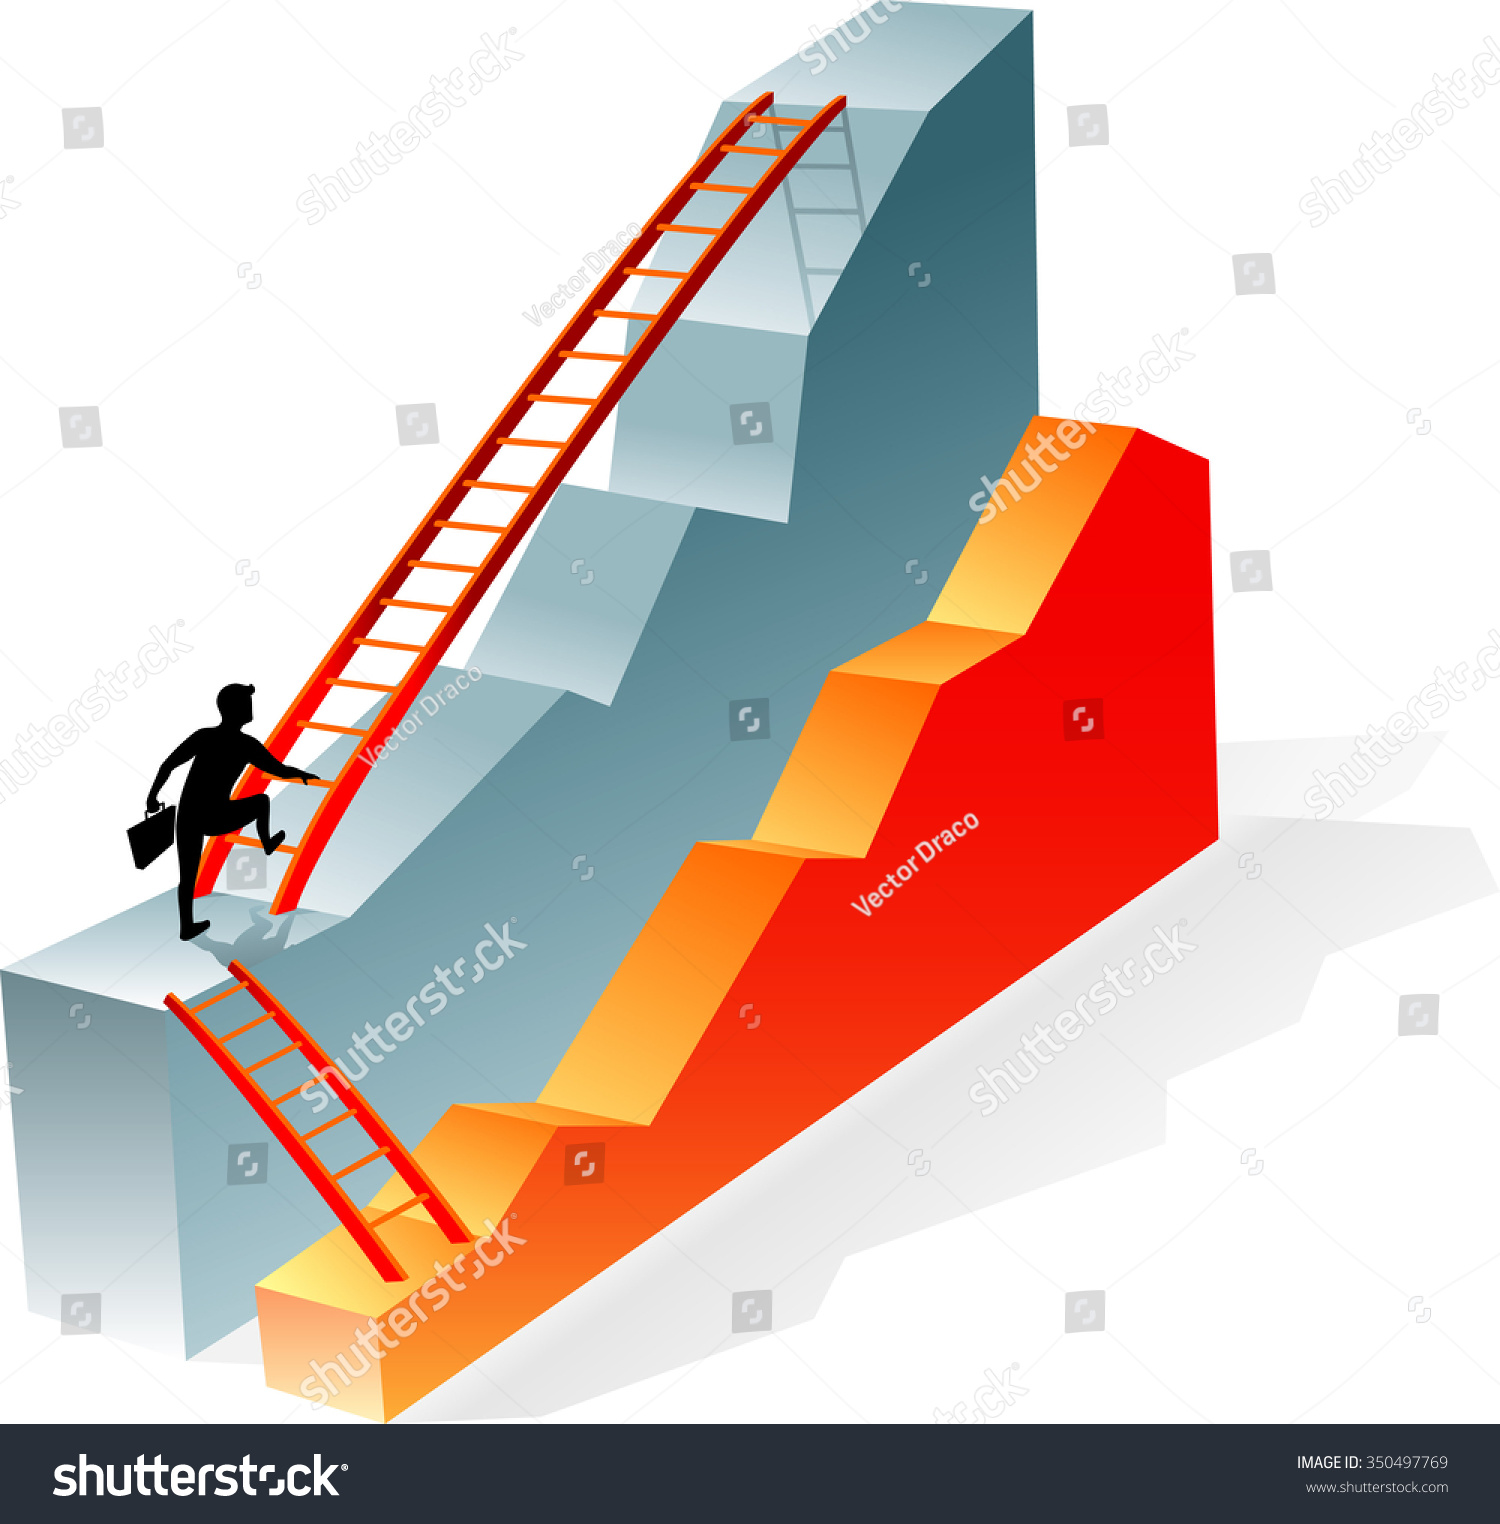 business graph laddermoving higher business growth stock vector business graph and ladder moving up to higher business growth goals